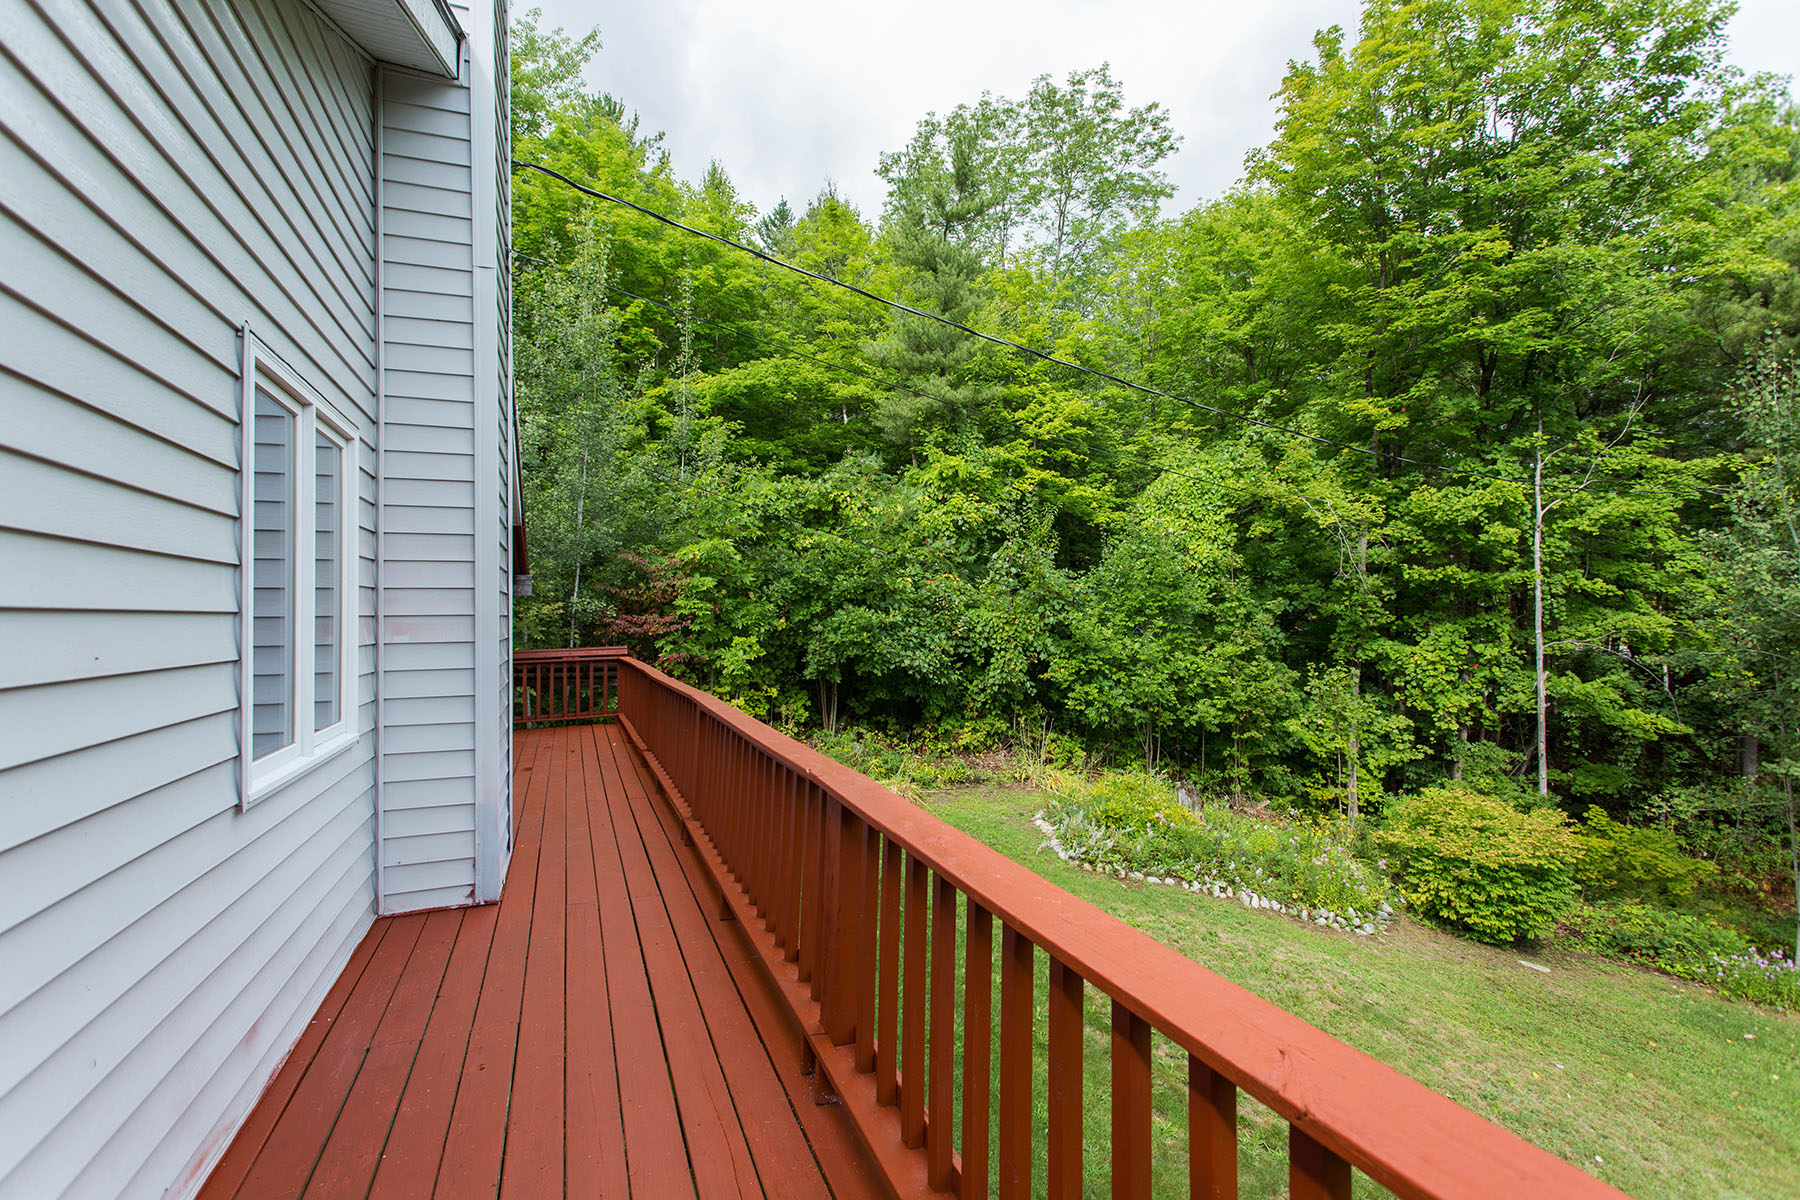 Additional photo for property listing at Follow the Path to Your Adirondack Retreat 6  Jakes Rd Hague, New York 12836 United States